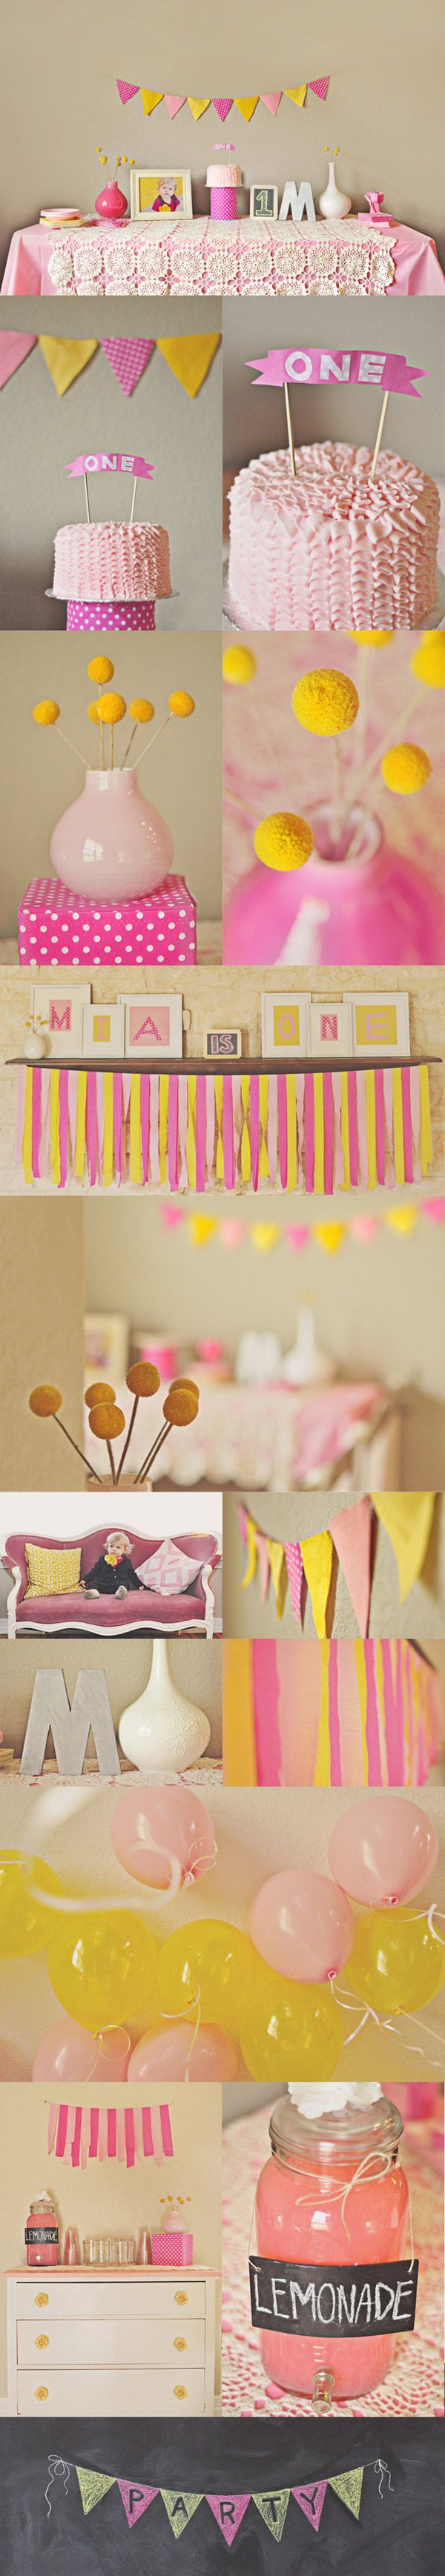 pink & yellow party